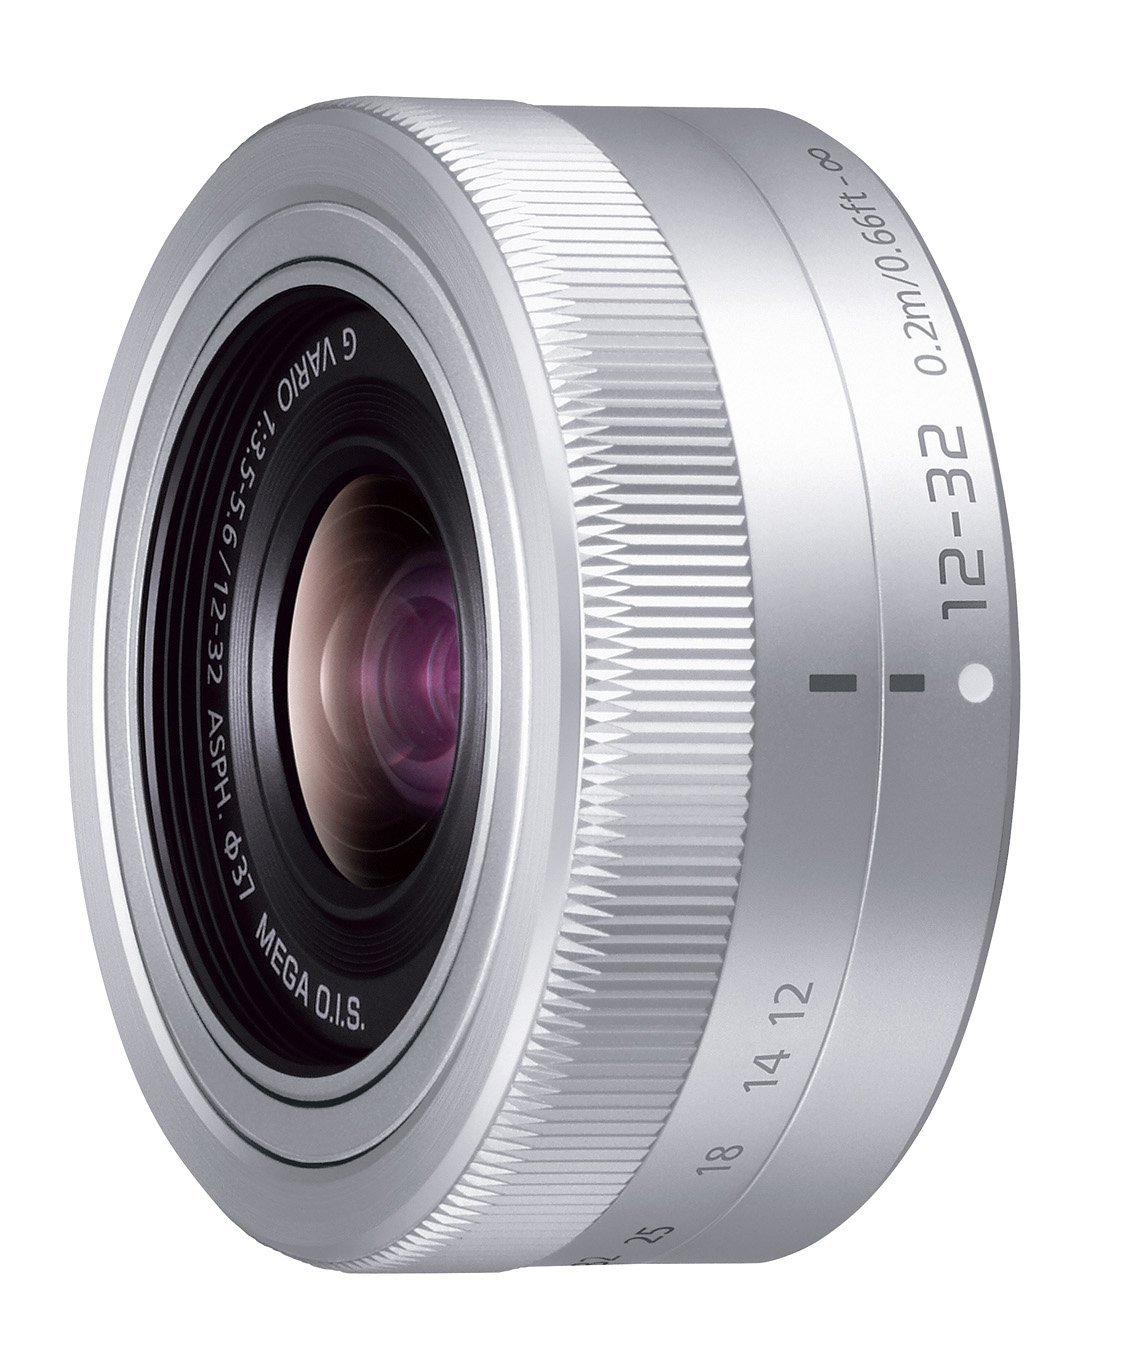 Cheap Mega Ois Find Deals On Line At Alibabacom Panasonic G7 Kit 14 42 Ii Silver Leica 25mm F Get Quotations Micro Four Thirds Interchangeable Lens Lumix G Vario 12 32mm F35